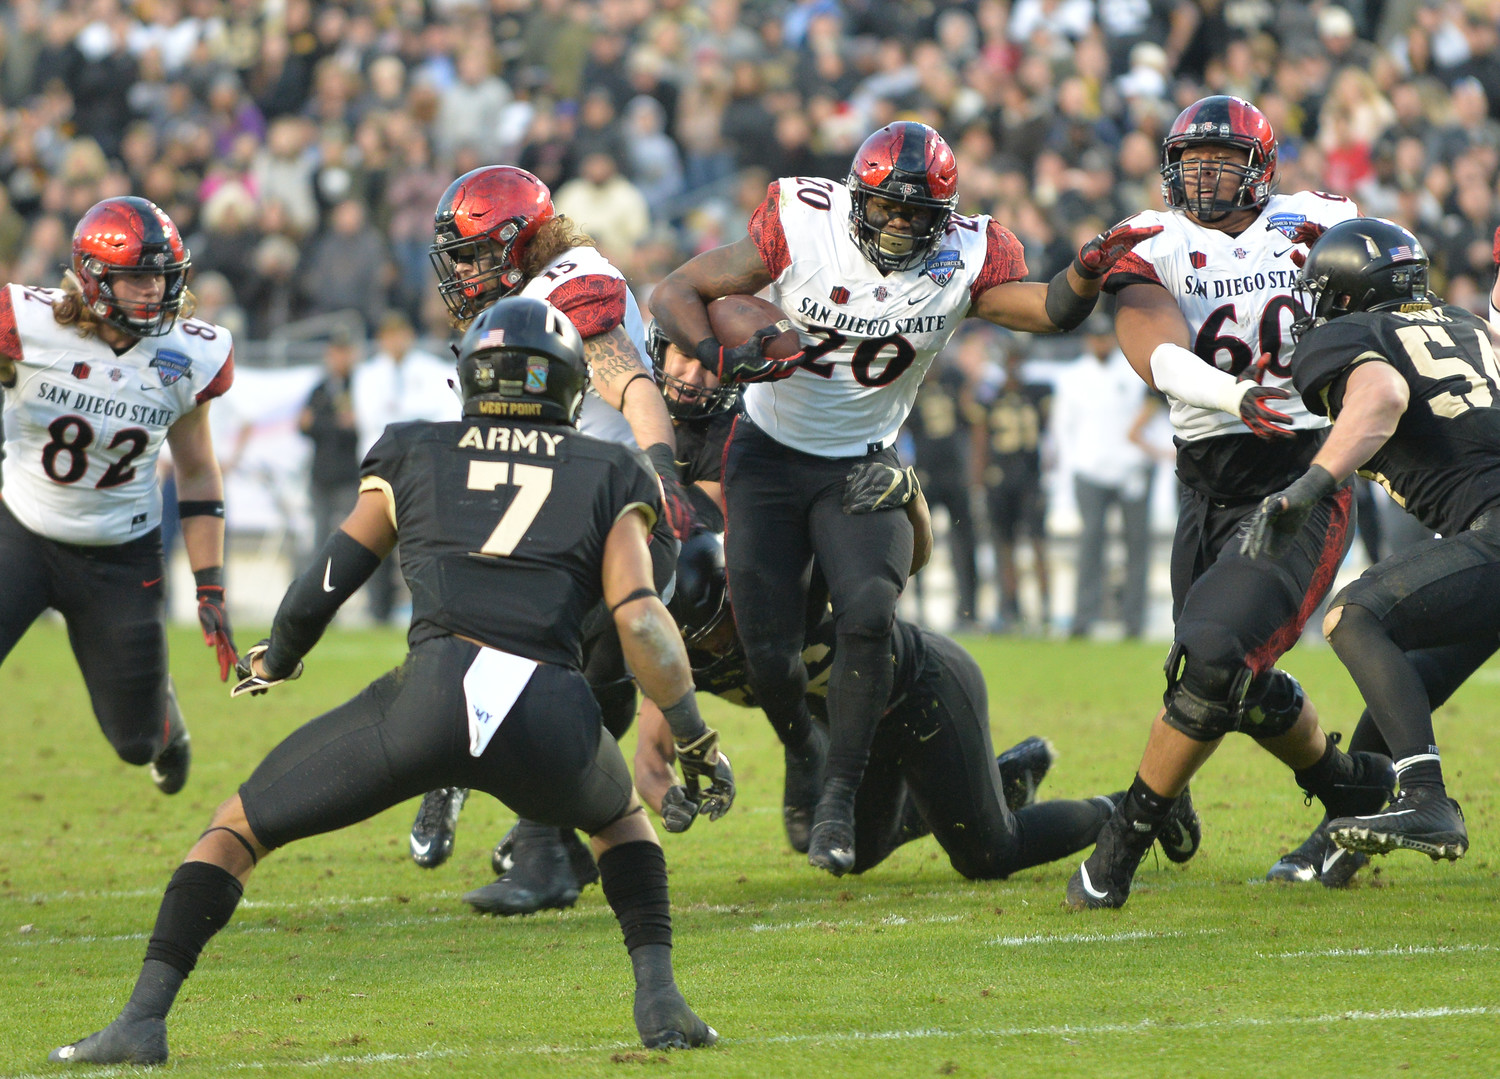 San Diego State running back Rashaad Penny, who finished with a school-record 2,248 rushing yards this season, had his fifth straight game with at least 200 yards, rushing for 221 yards and four touchdowns in the Aztec's loss to Army in the Armed Forces Bowl.